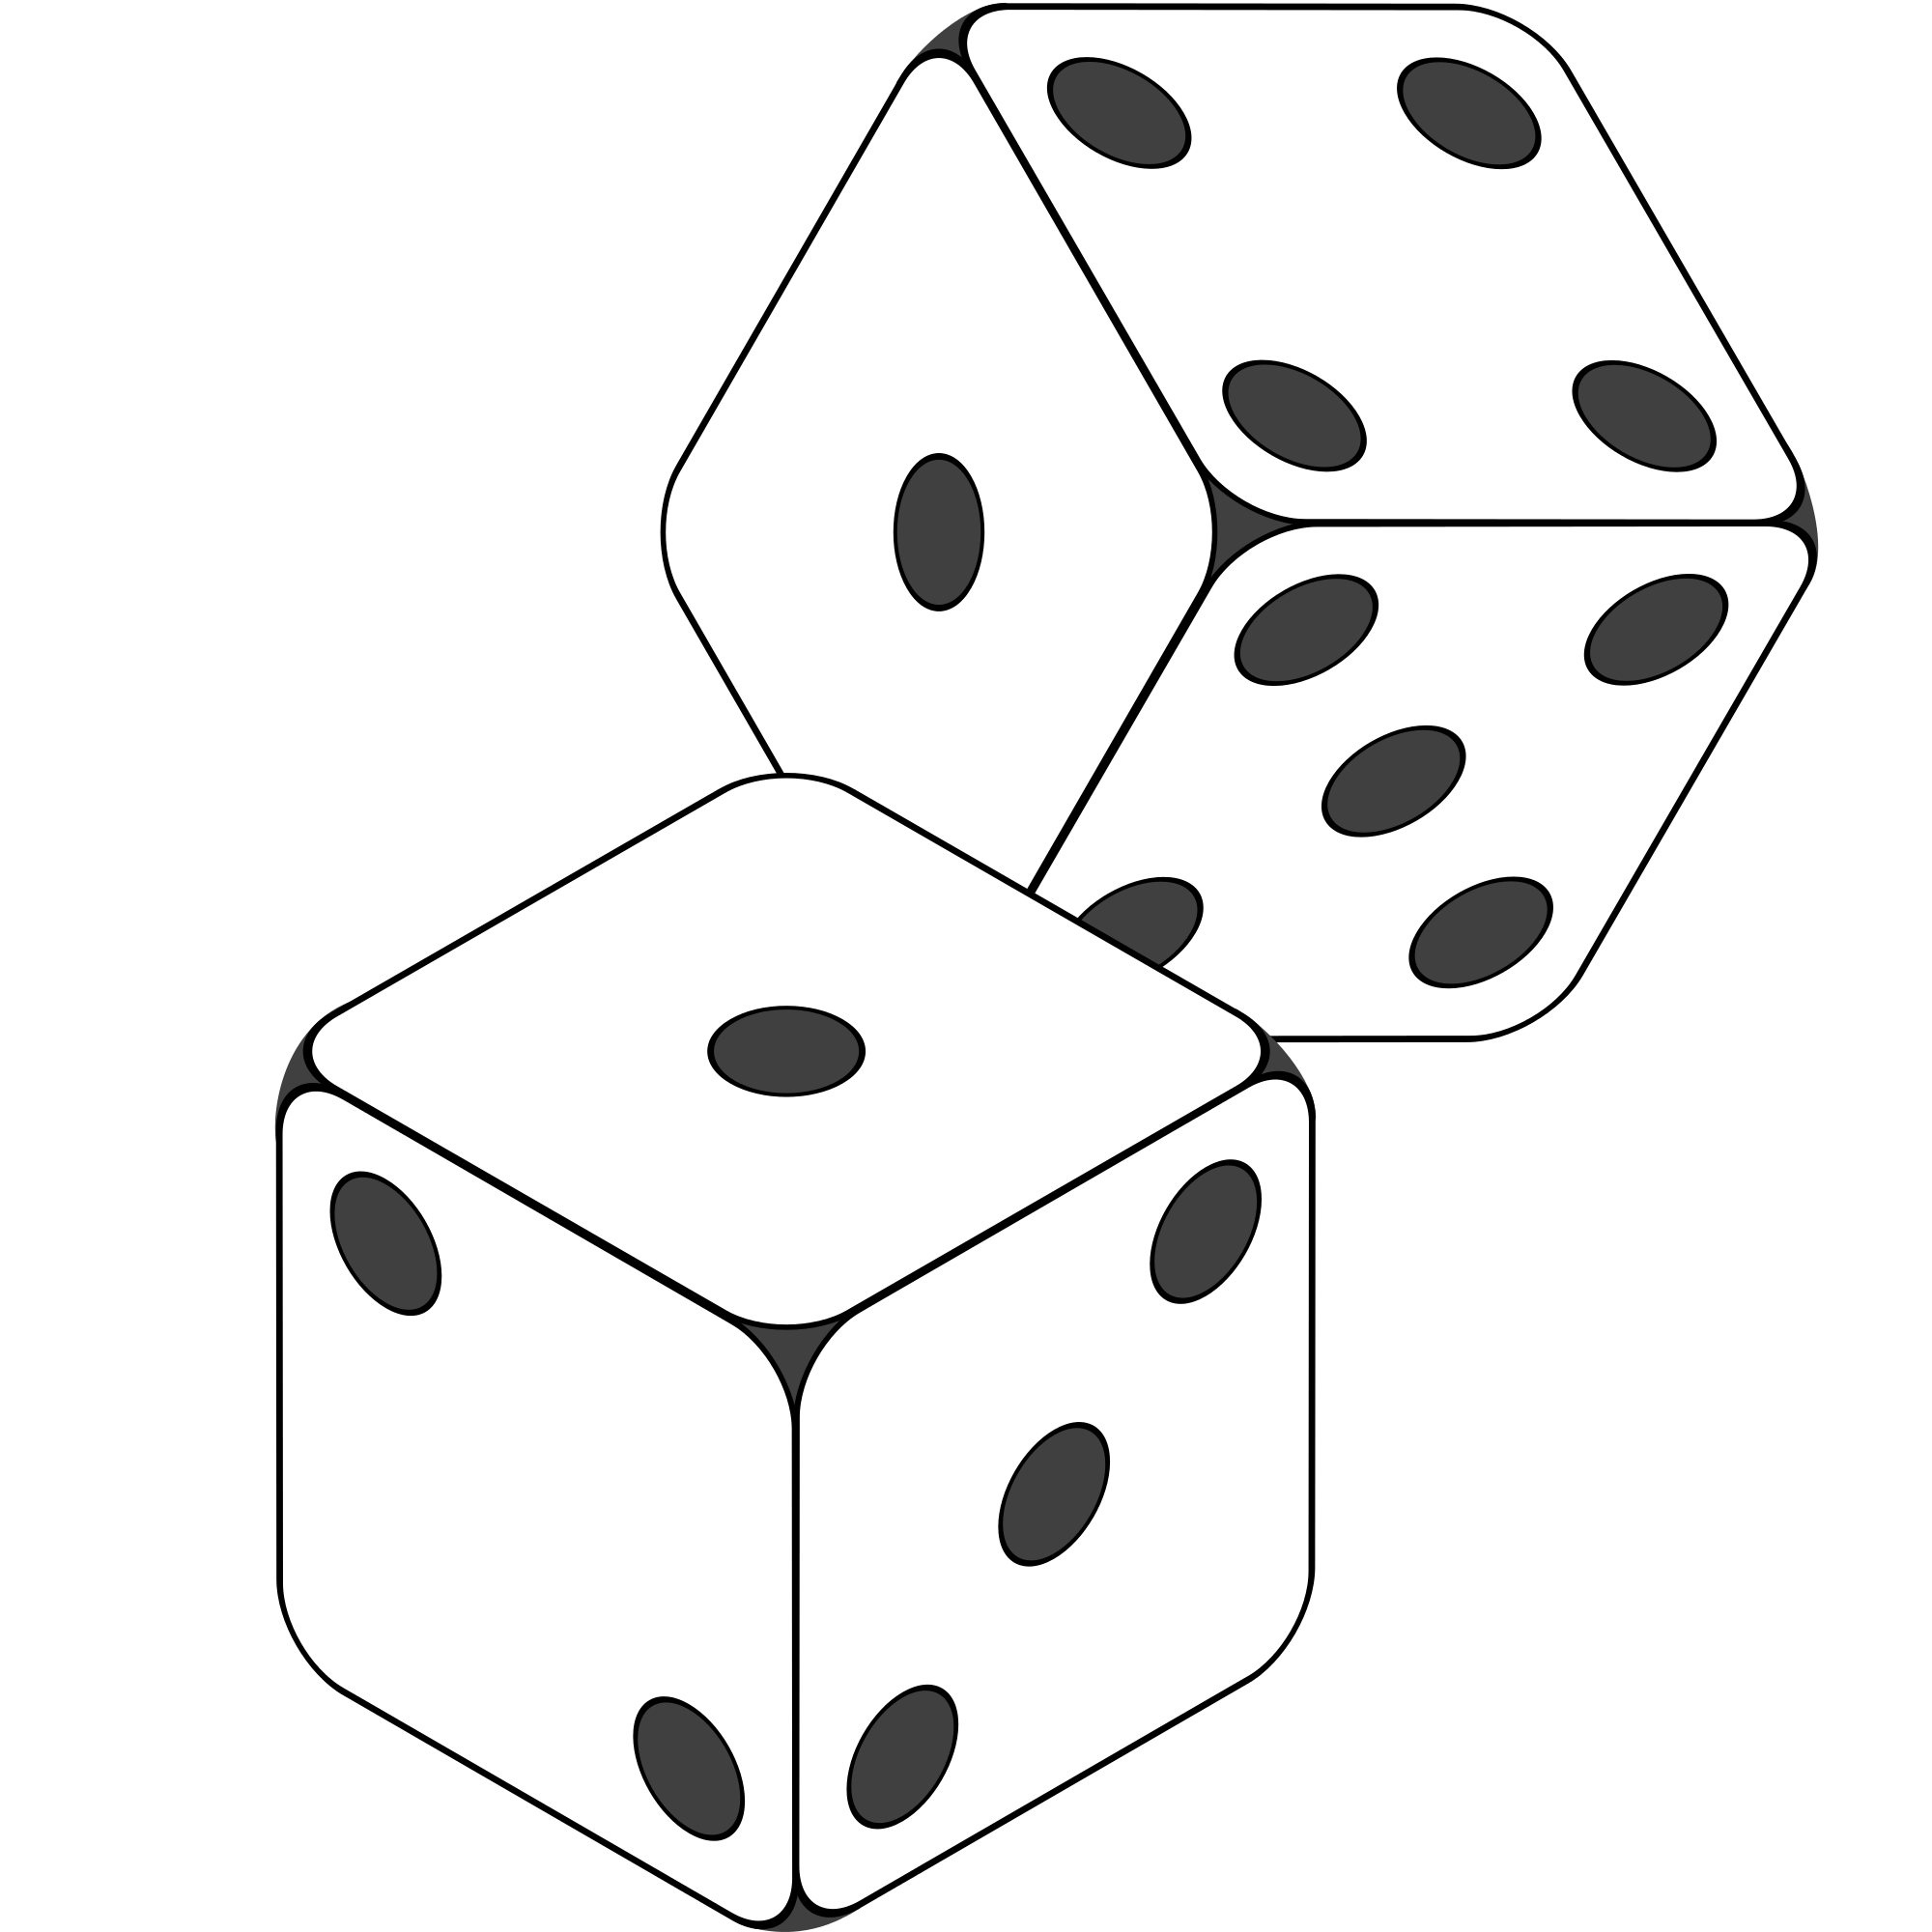 drawing dice two